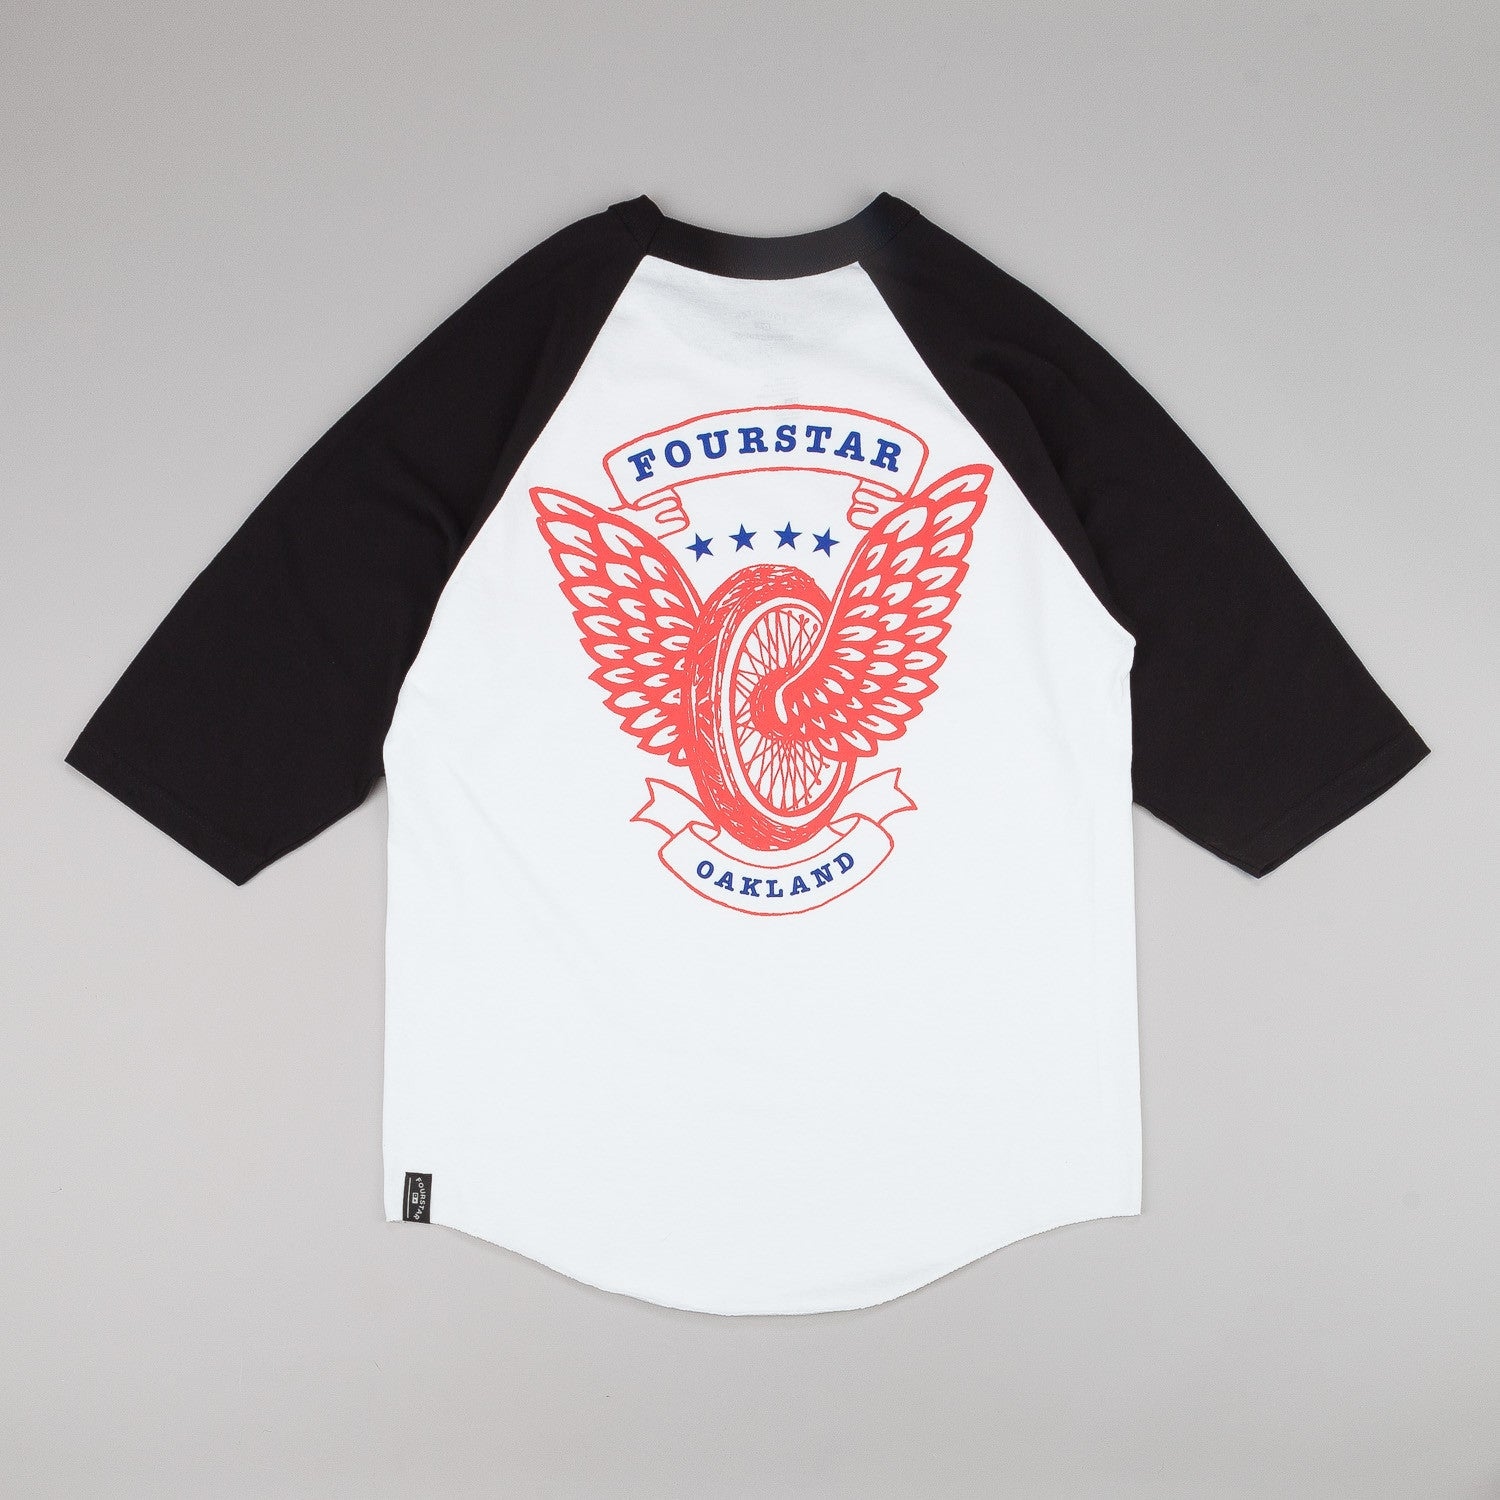 Fourstar Winged Wheel 3/4 Sleeve Raglan T-Shirt - Black / White